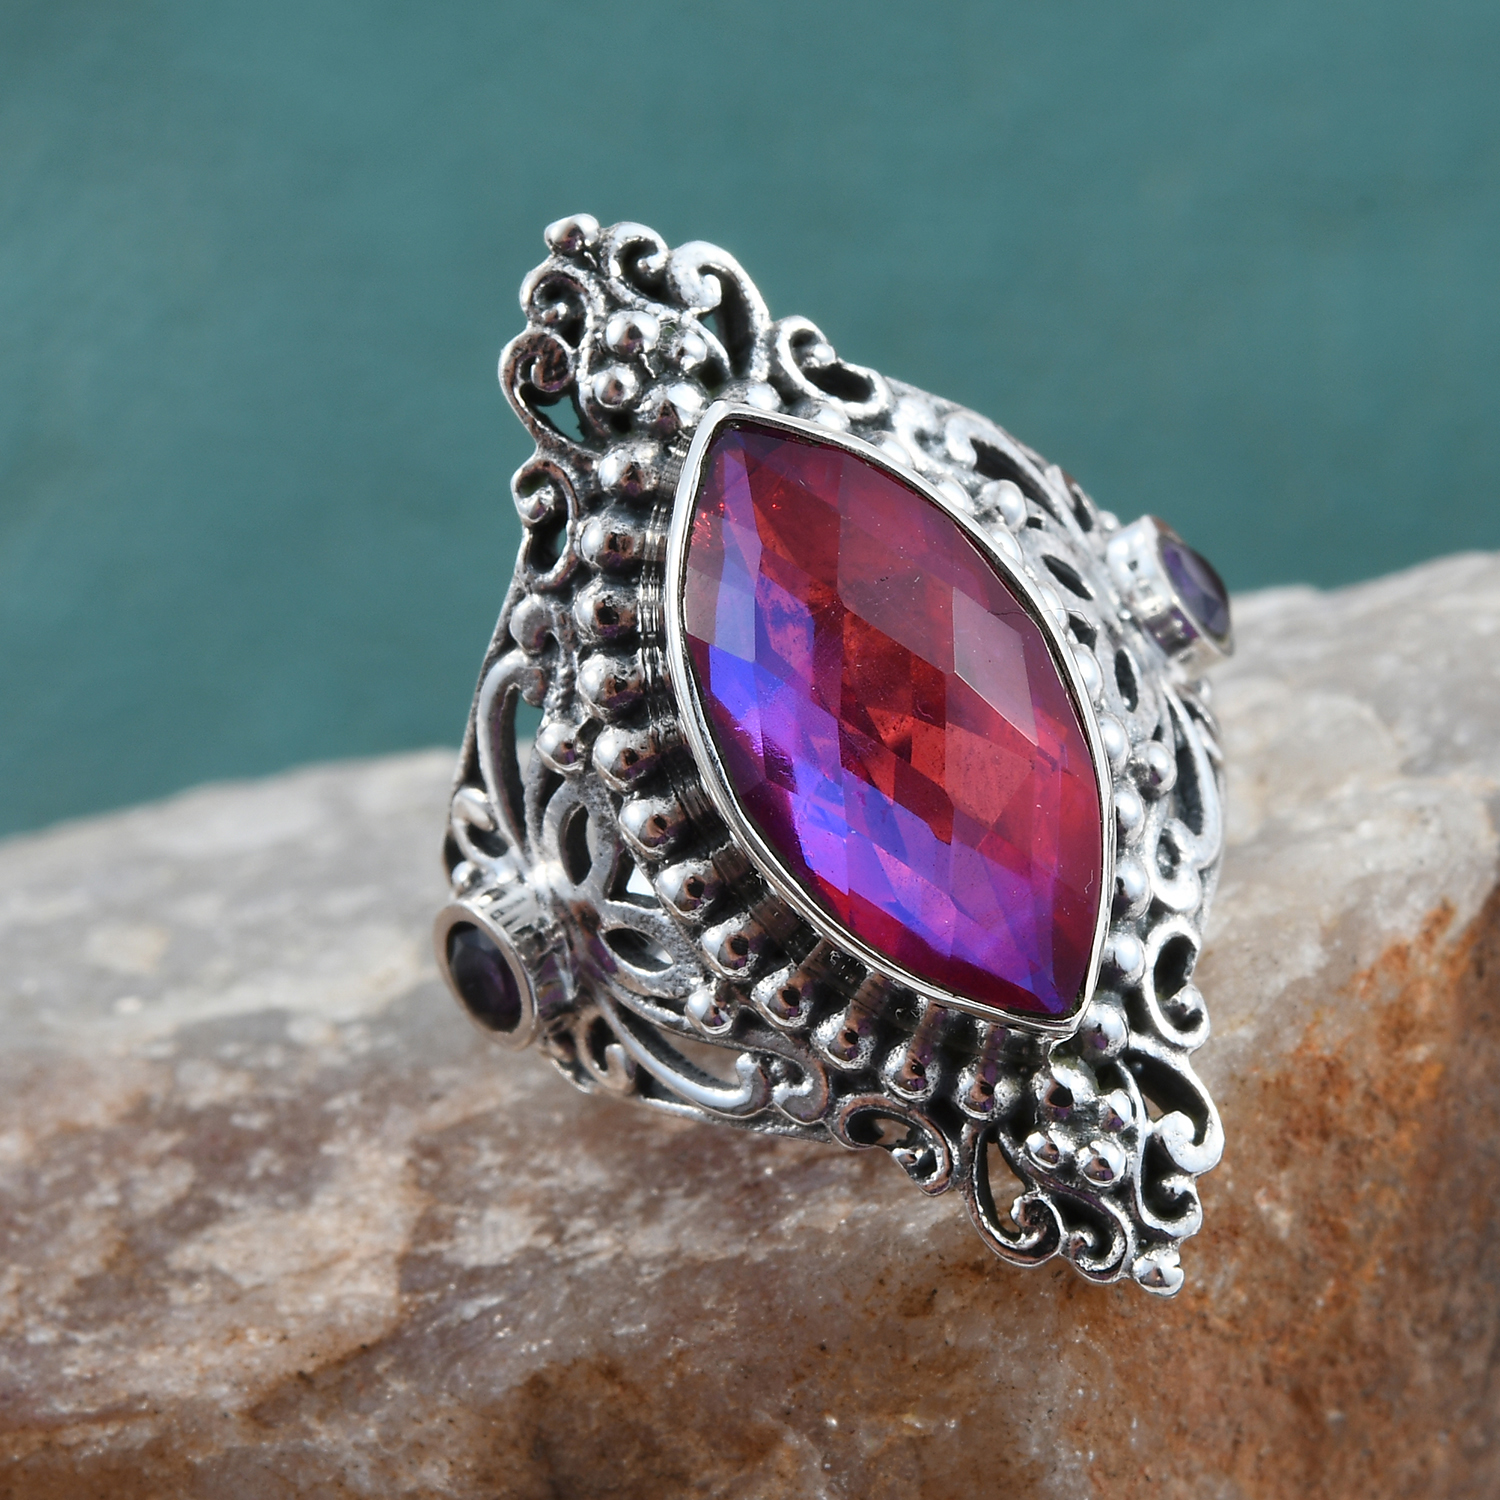 Artisan Crafted Volcanic Quartz, Amethyst Ring in Sterling Silver (Size 5.0) 5.05 ctw